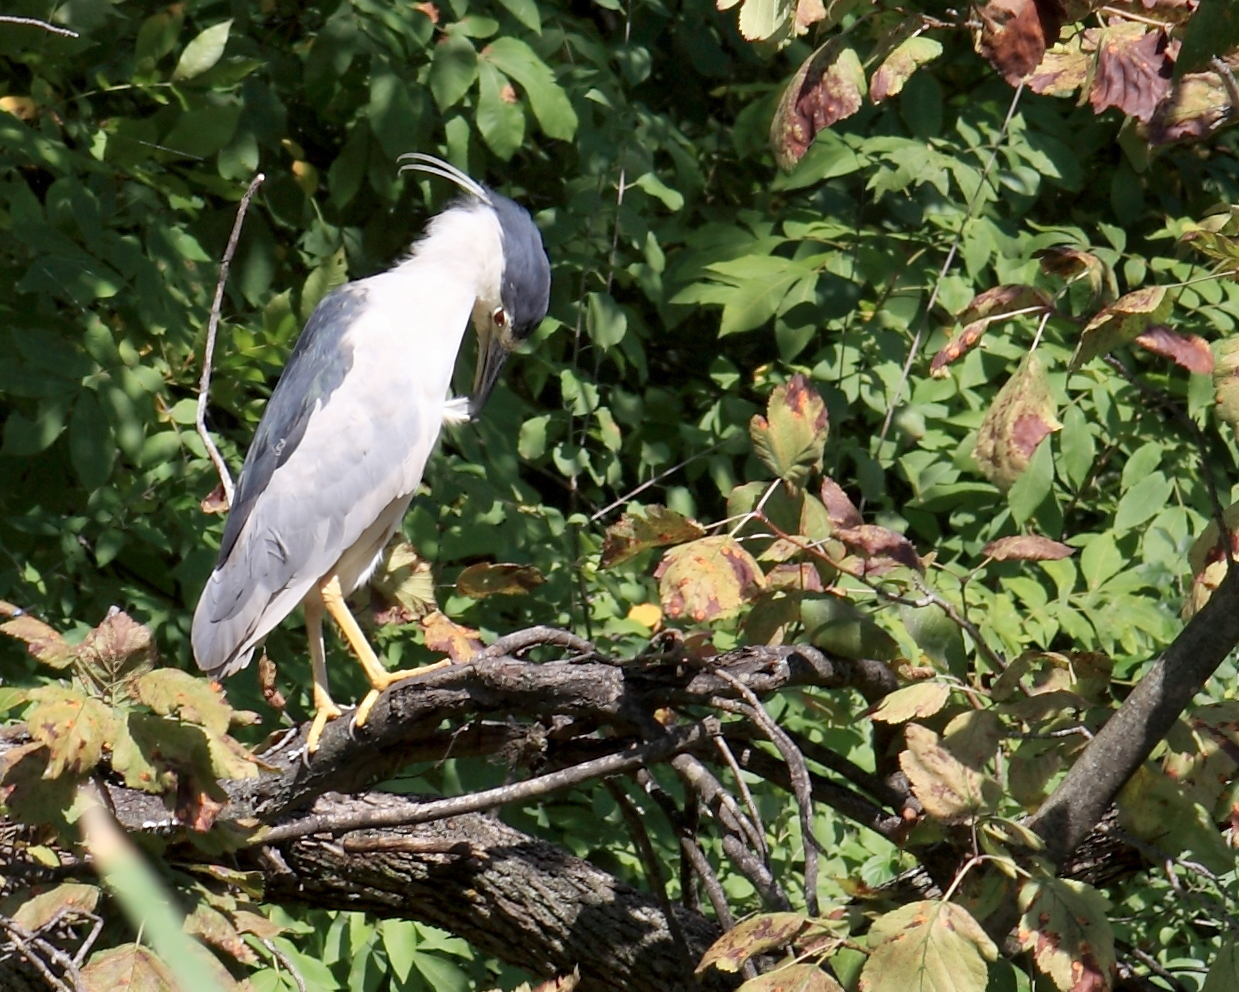 A black crowned night heron was caught doing some daylight grooming near the bridge by the Lederman Science Center. Photo: Leticia Shaddix, PPD